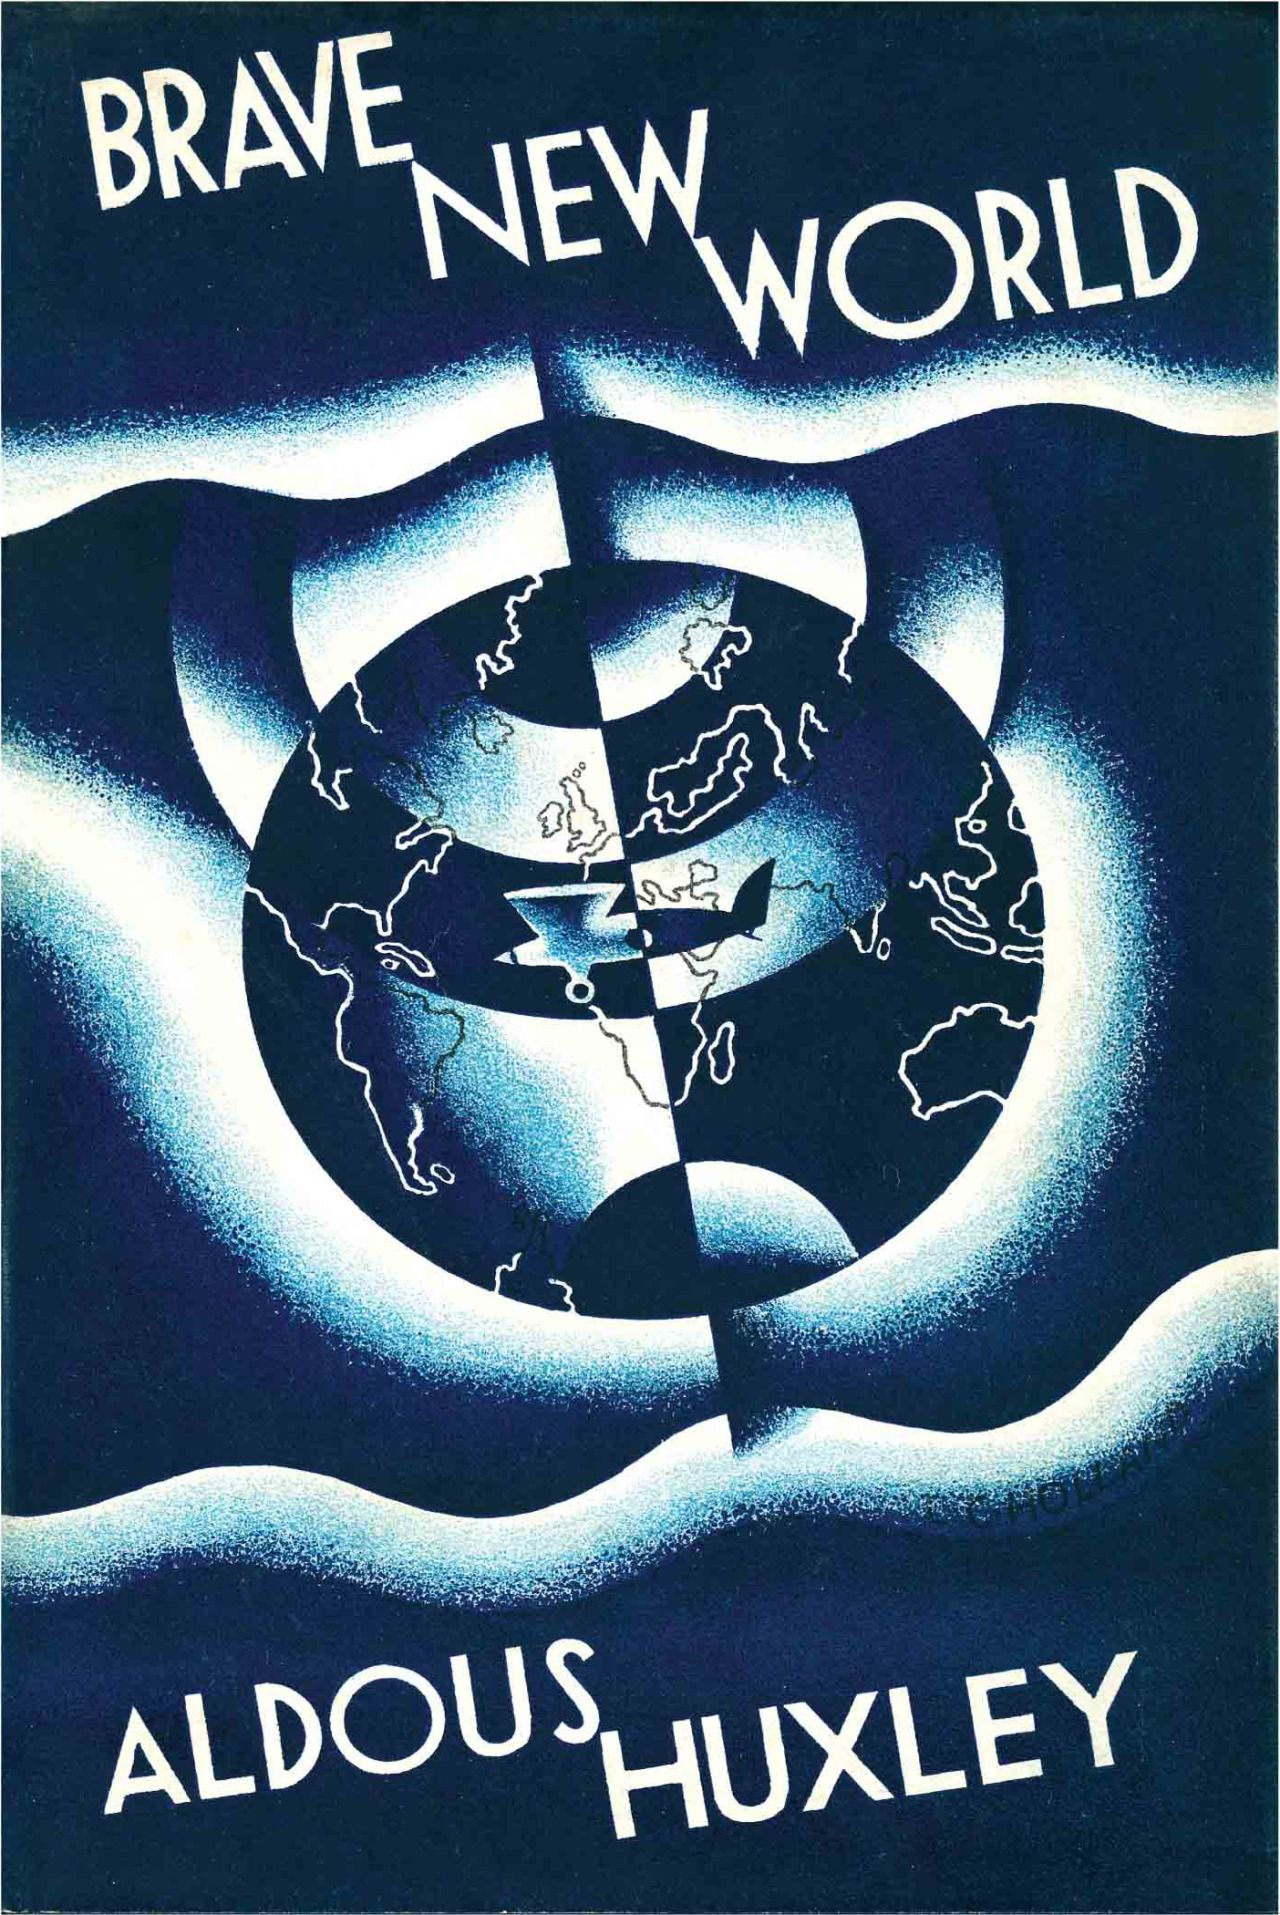 brave new world by aldous huxley books books books  brave new world by aldous huxley